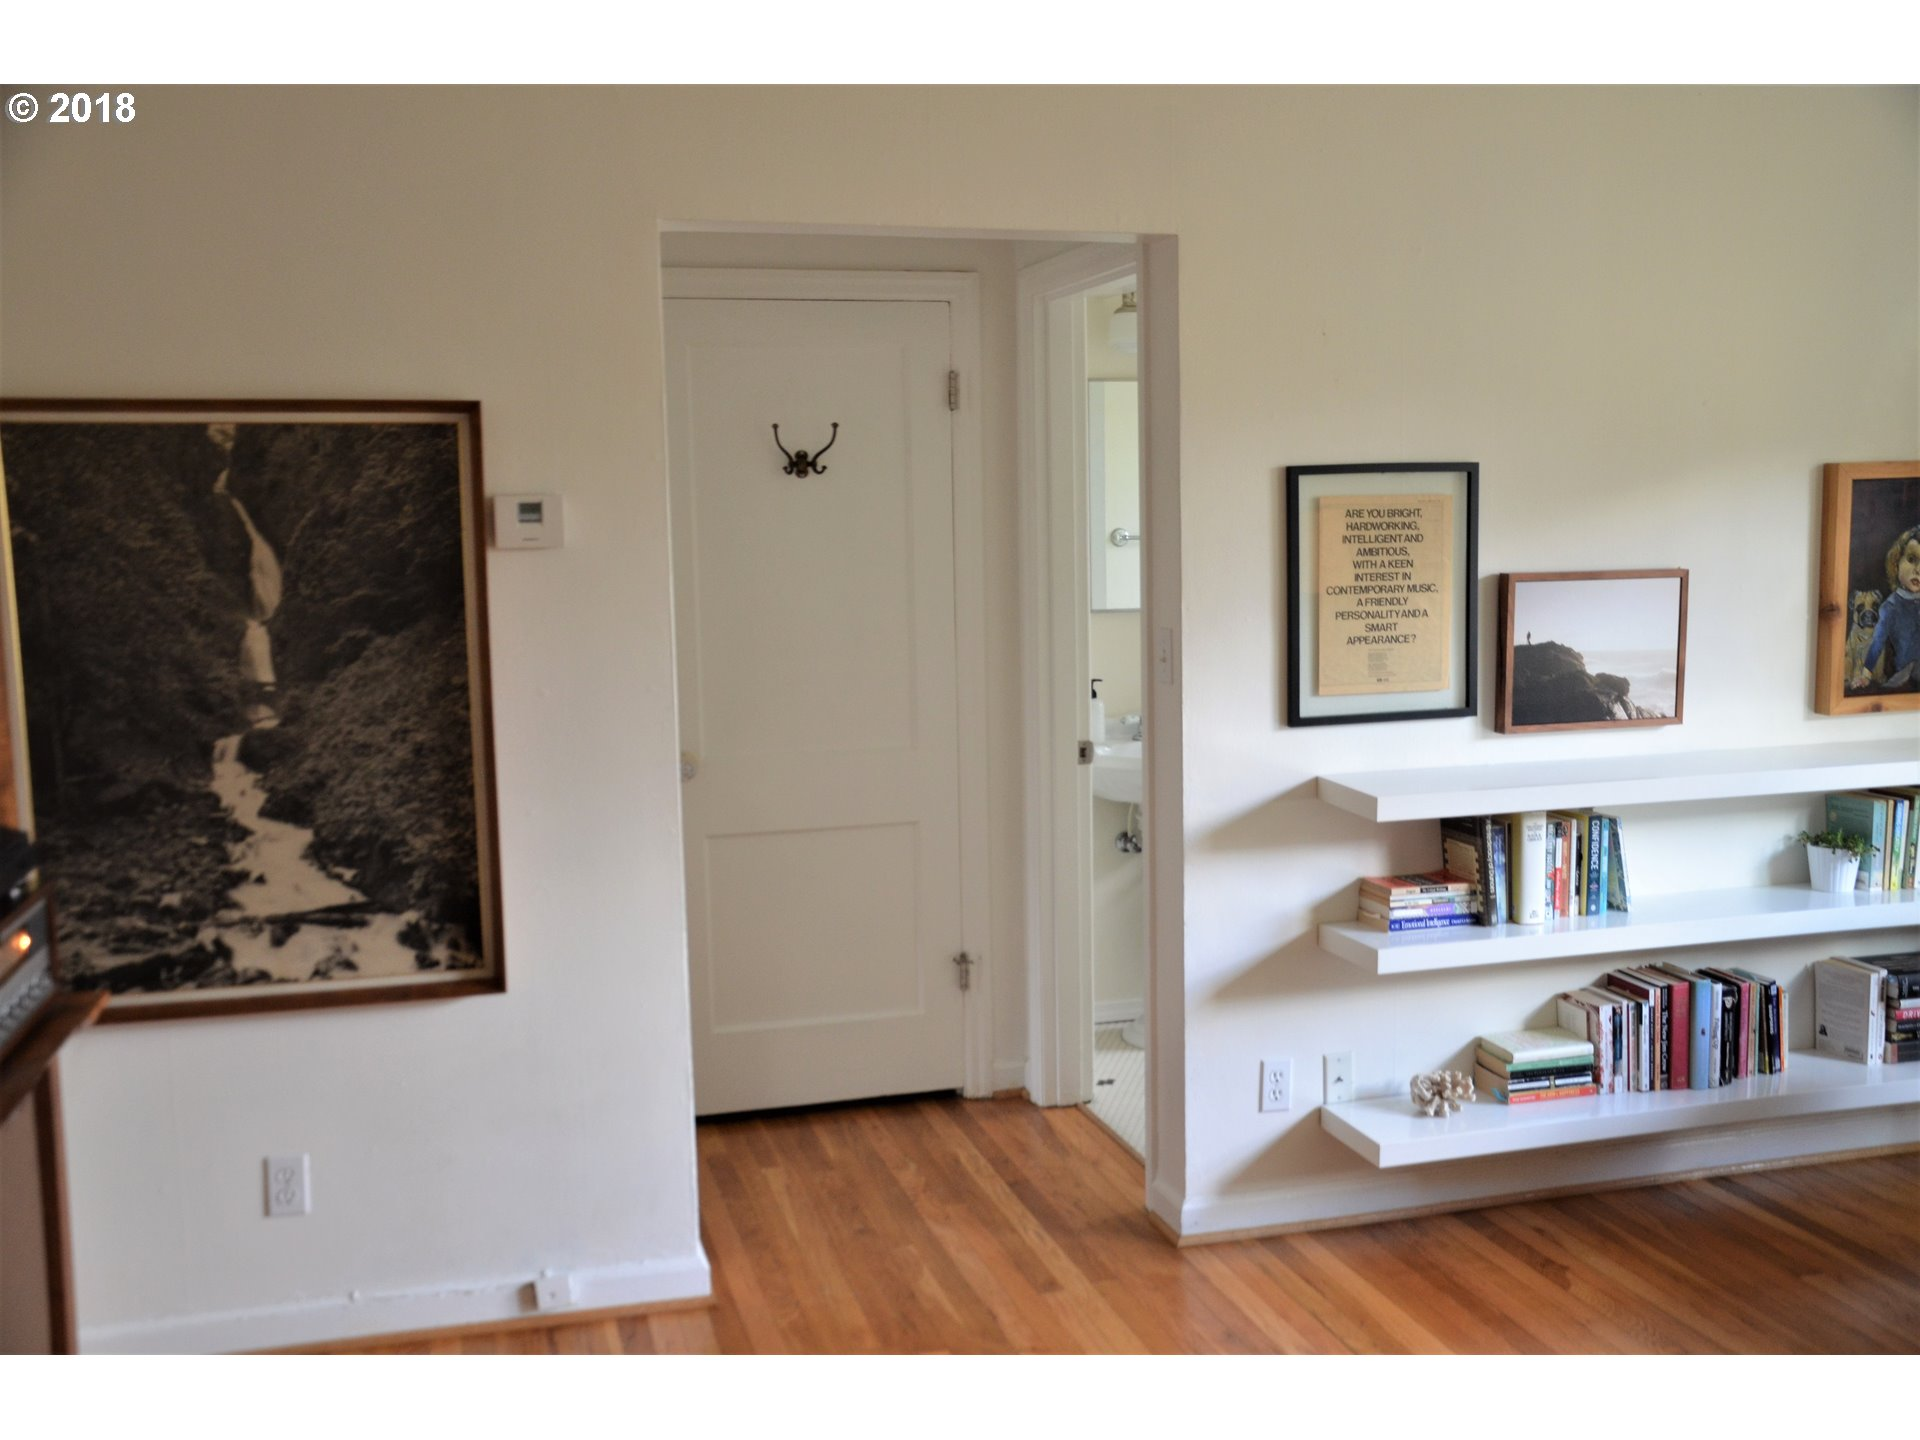 533 sq. ft 1 bedrooms 1 bathrooms  House For Sale,Portland, OR